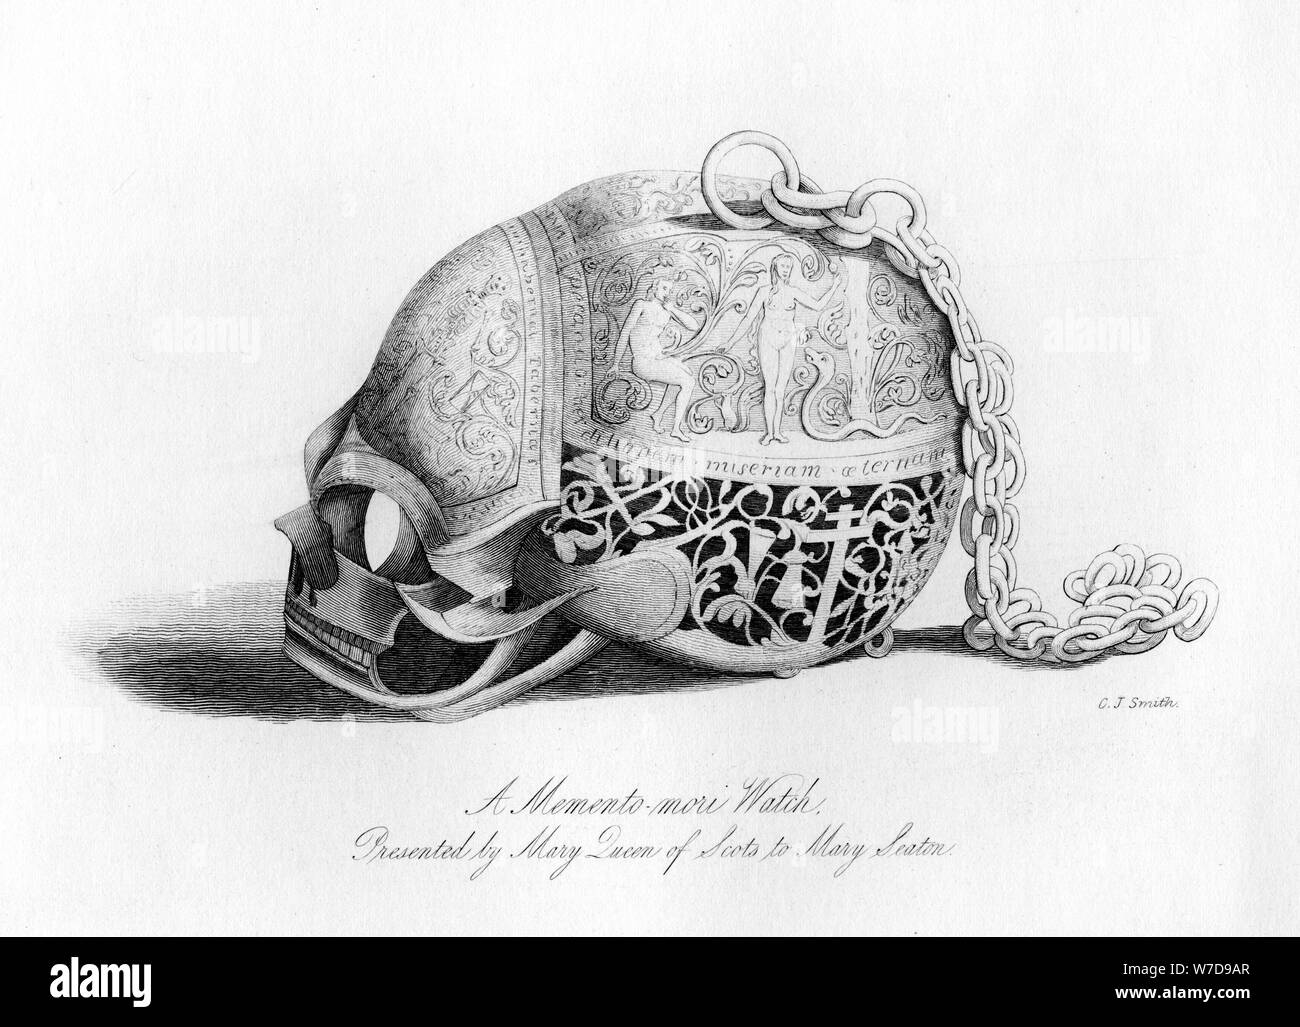 Memento-Mori watch presented by Mary Queen of Scots to Mary Seaton, 16th century, (1840).Artist: C J Smith Stock Photo